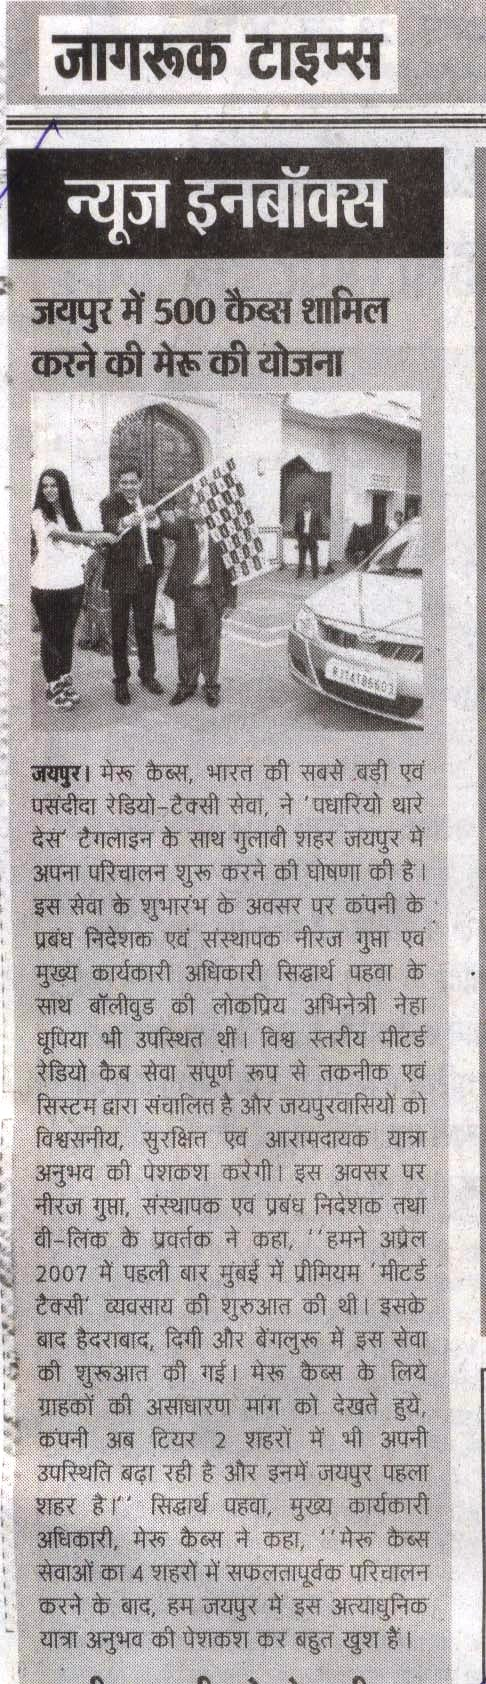 Jagruk Times Jaipur - 500 Meru Cabs to be operational in Jaipur